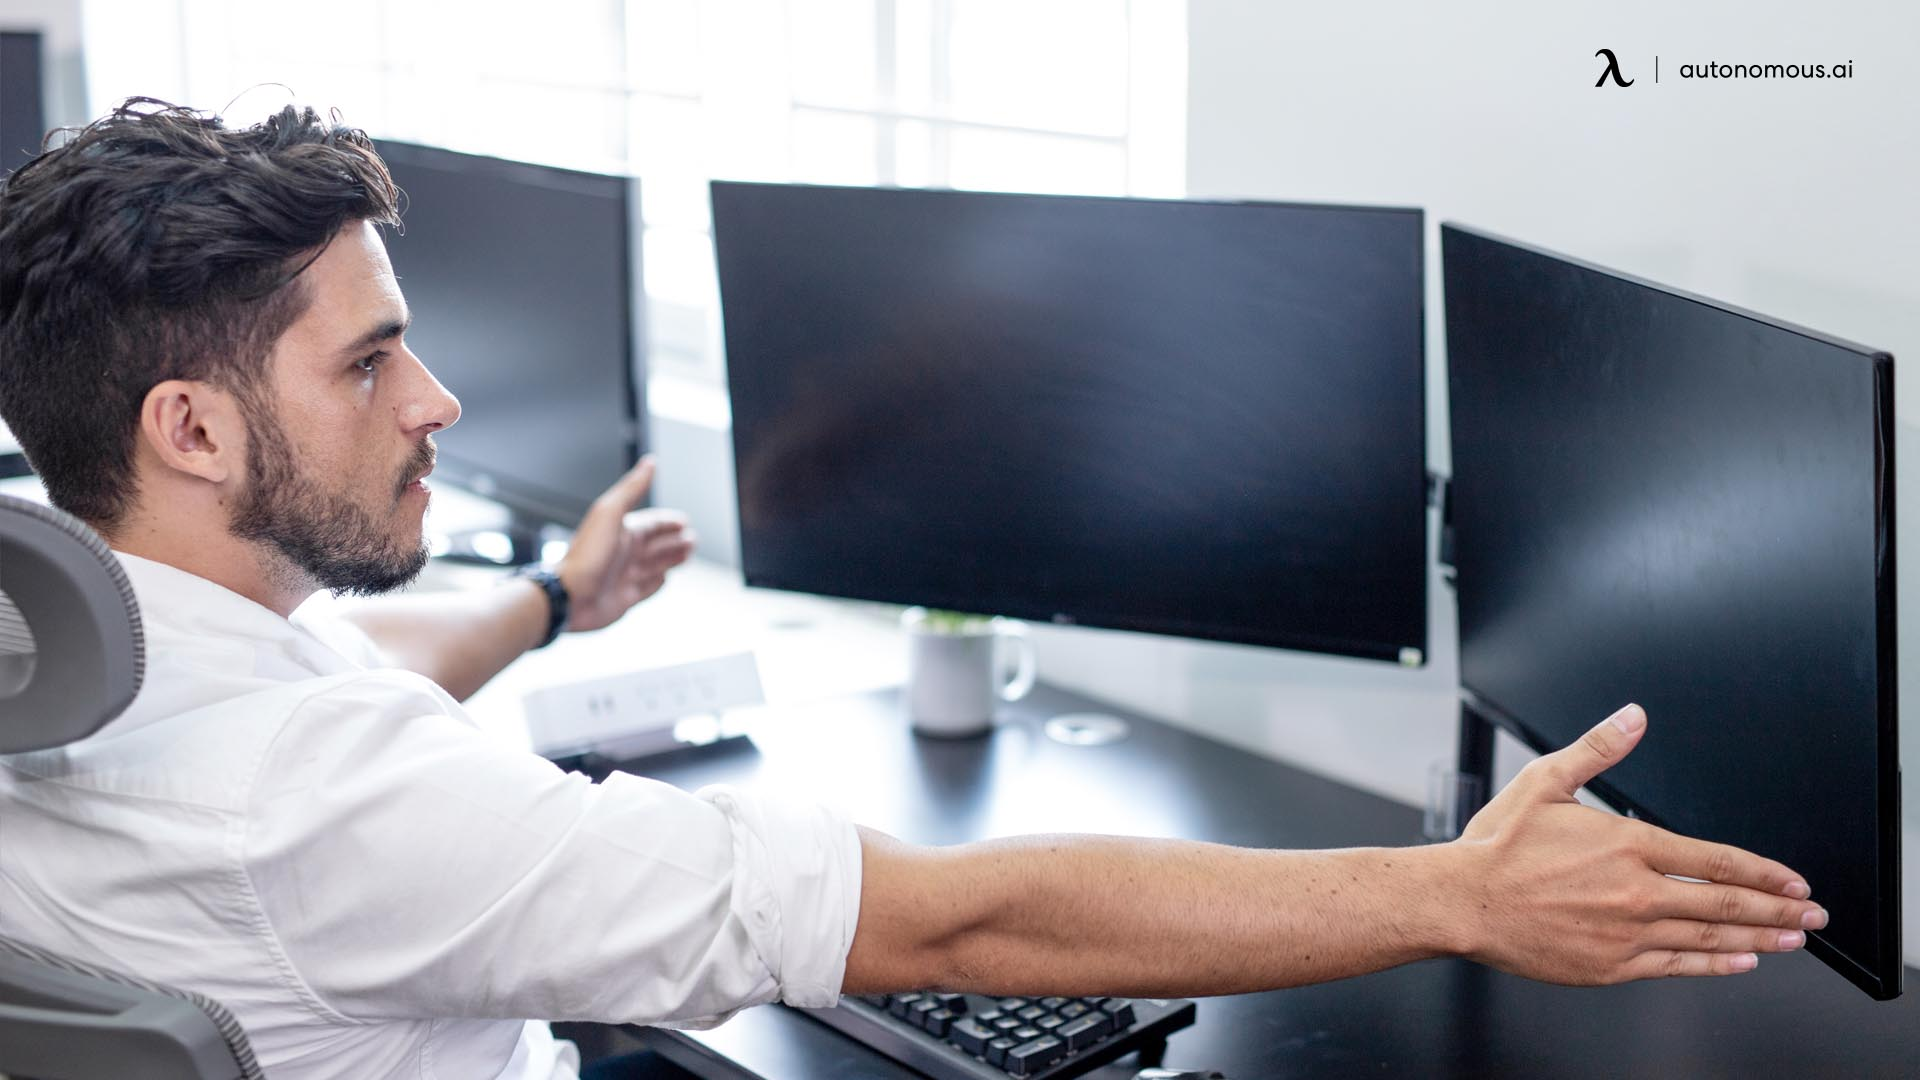 The Correct Sitting Posture at a Desk